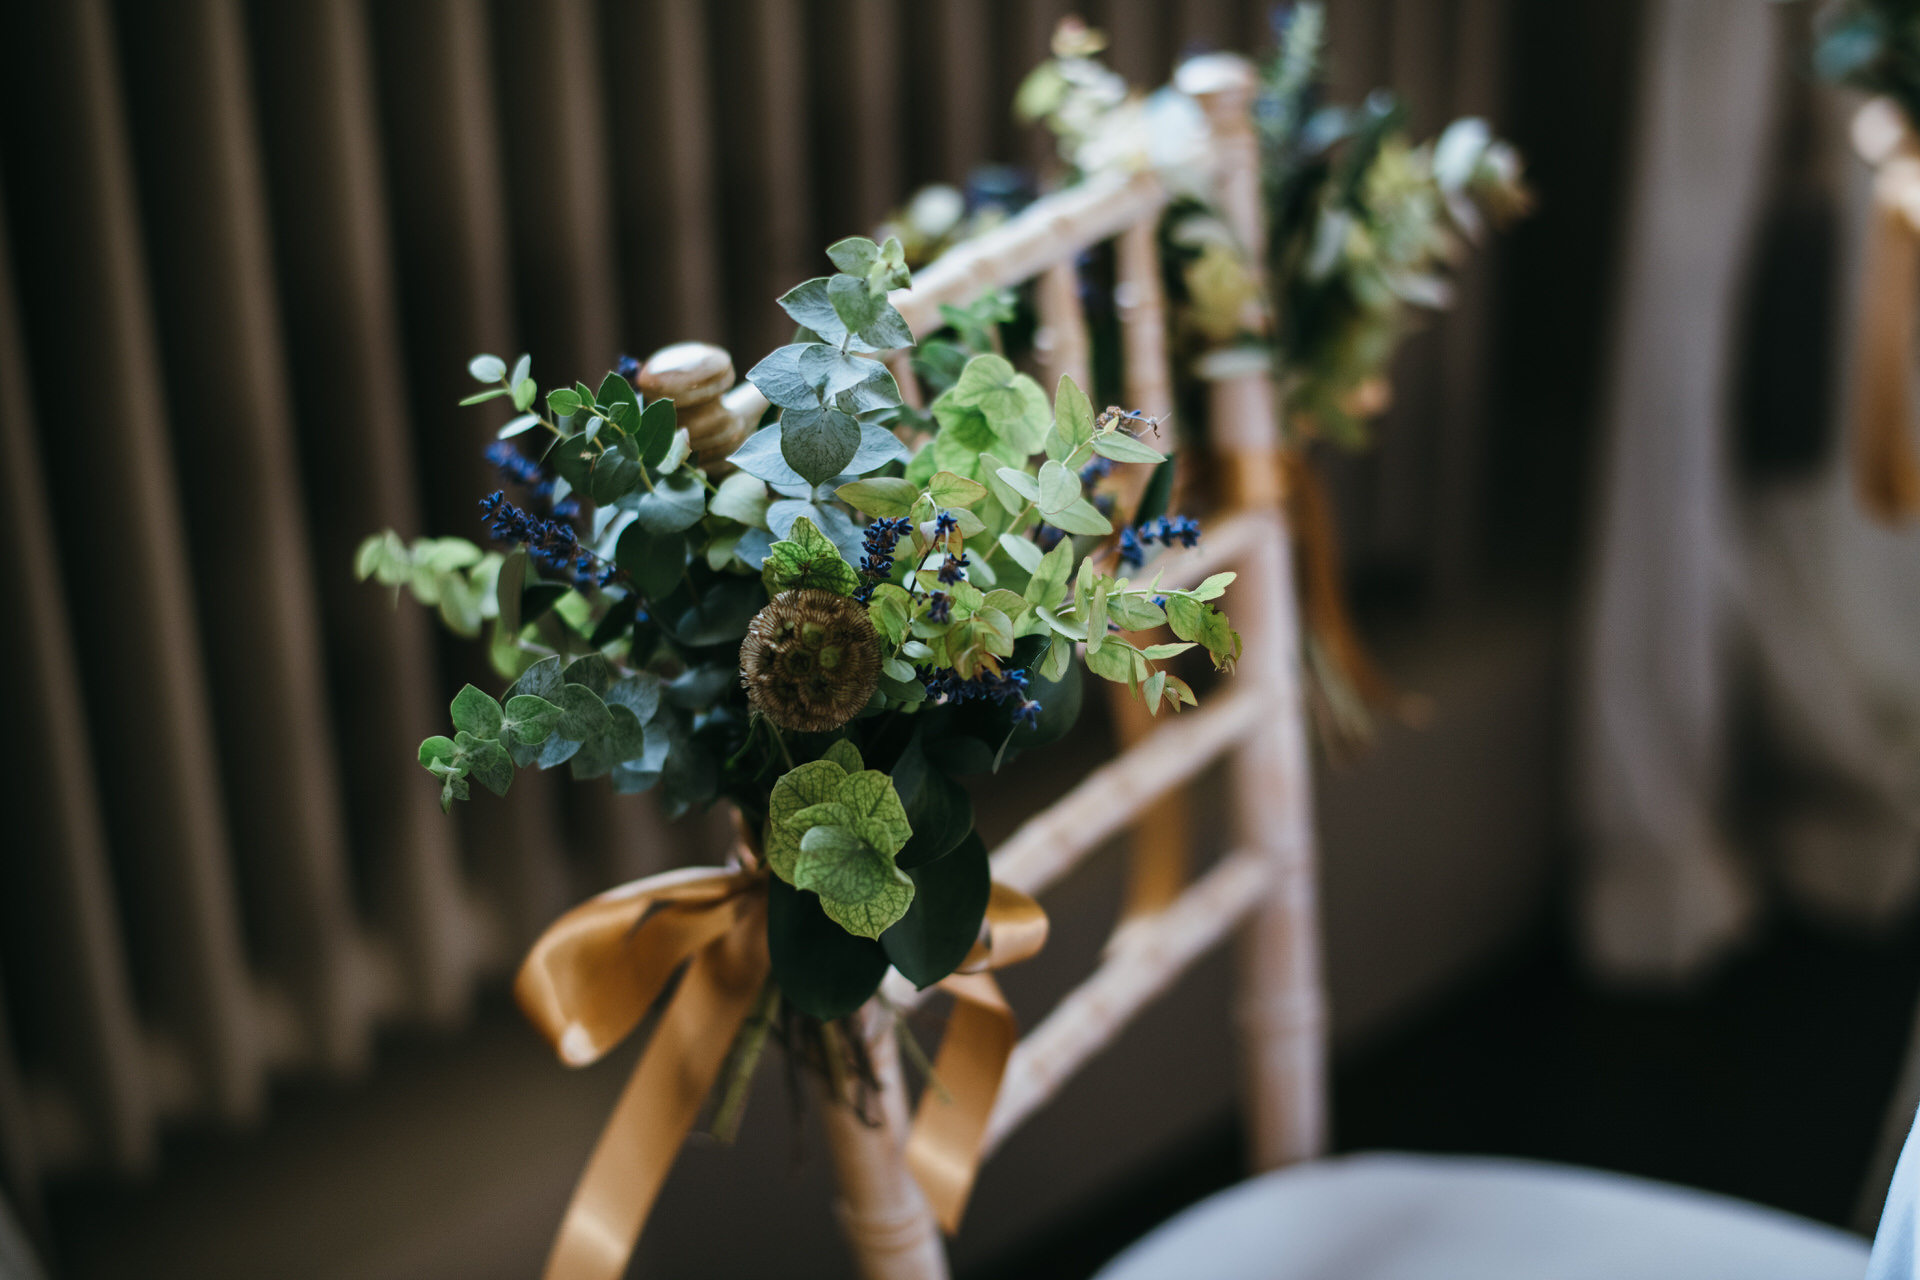 Flowers on wedding chairs